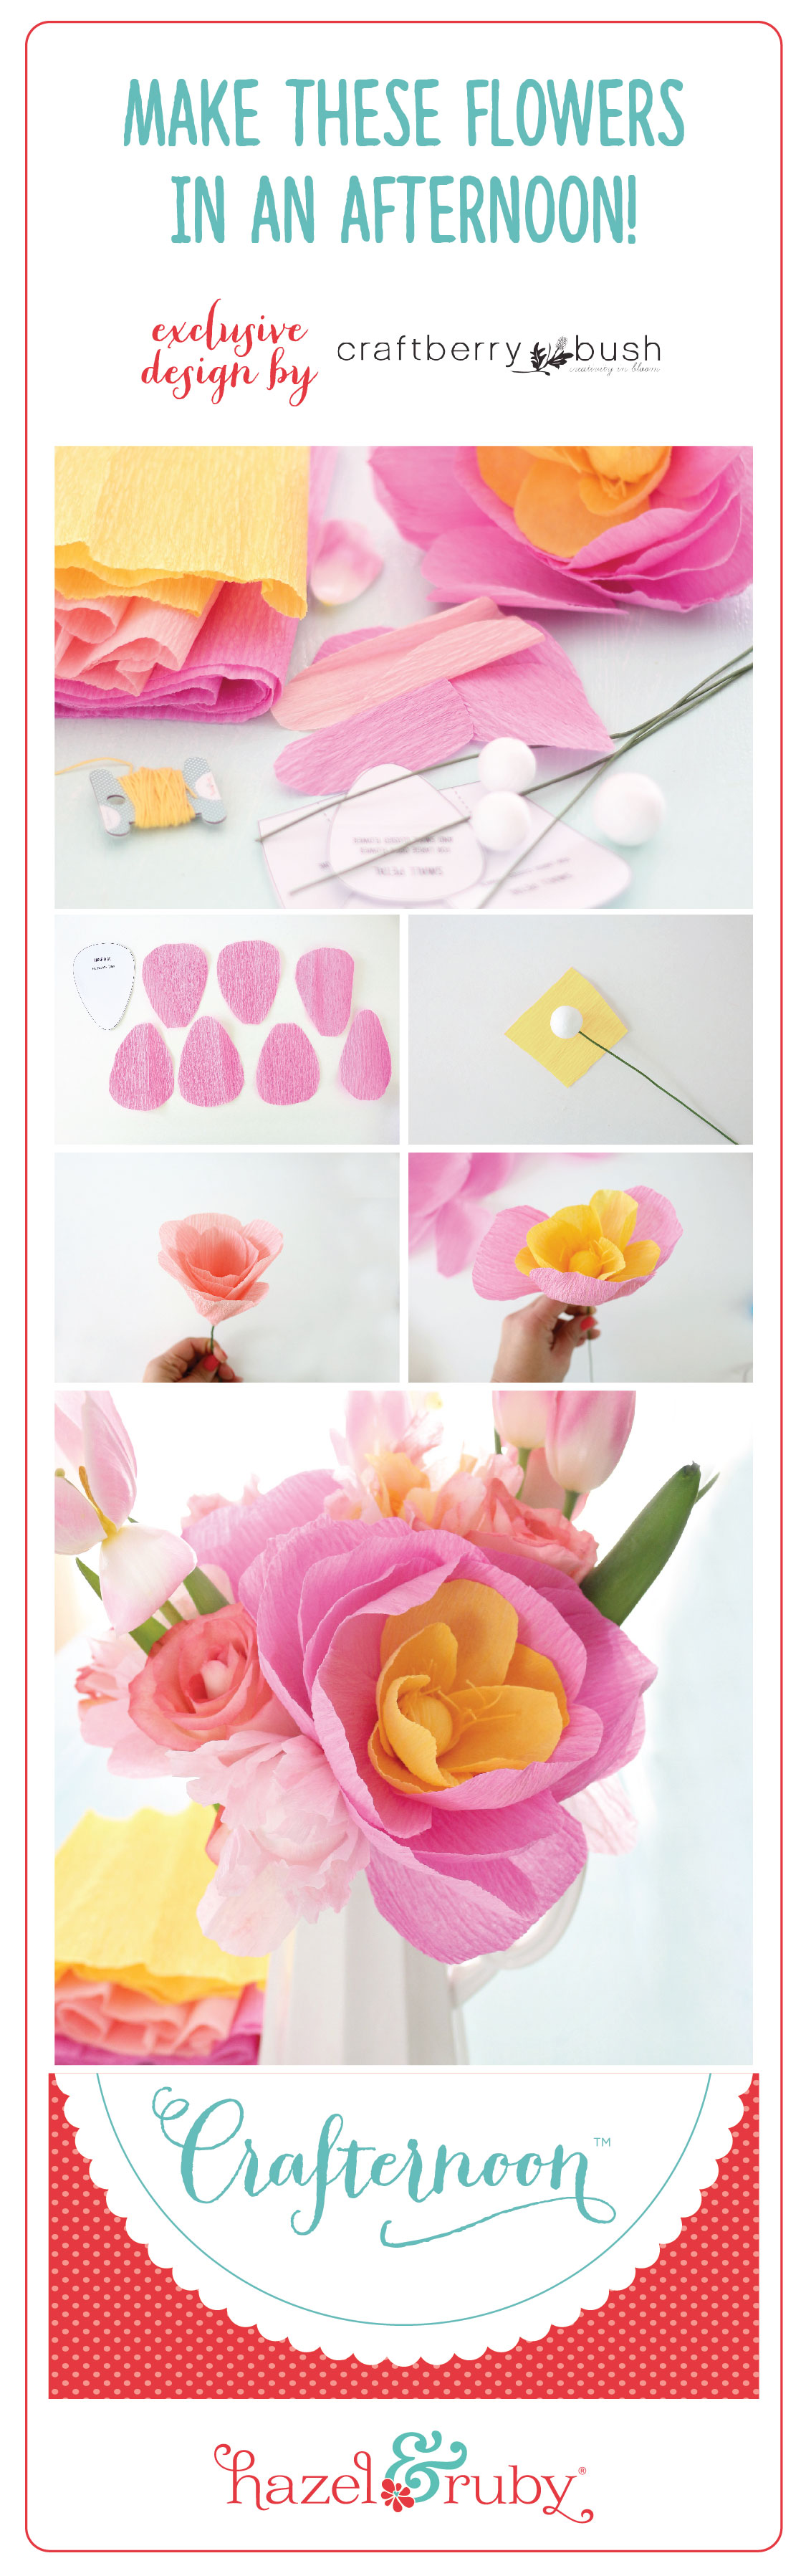 Crepe paper flower arrangement and an announcement